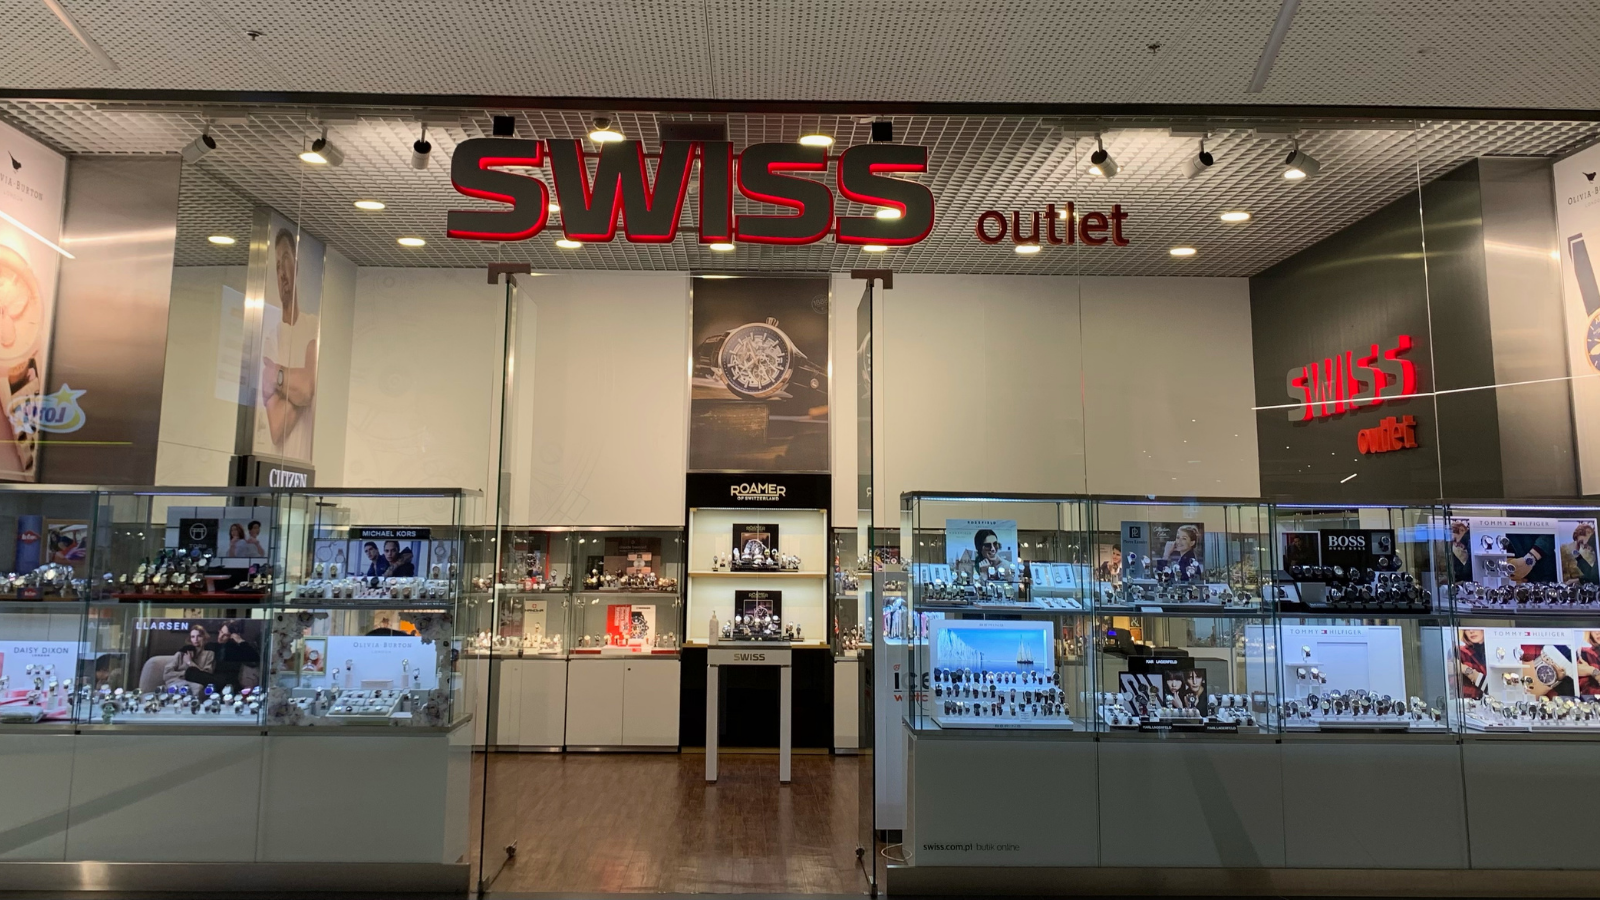 SWISS outlet